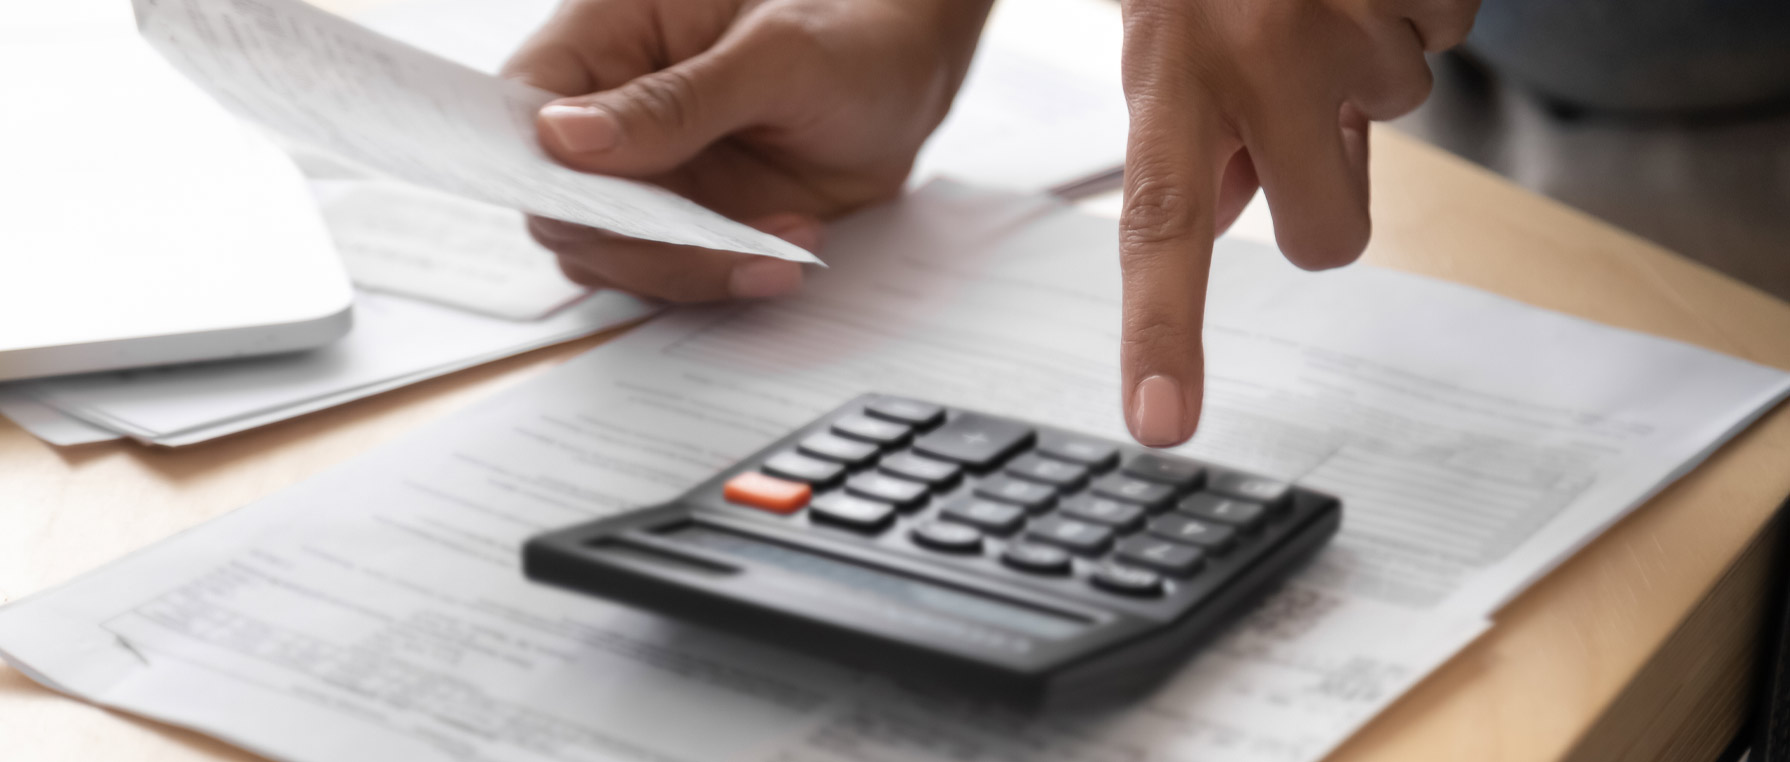 Hand using a calculator on table with papers